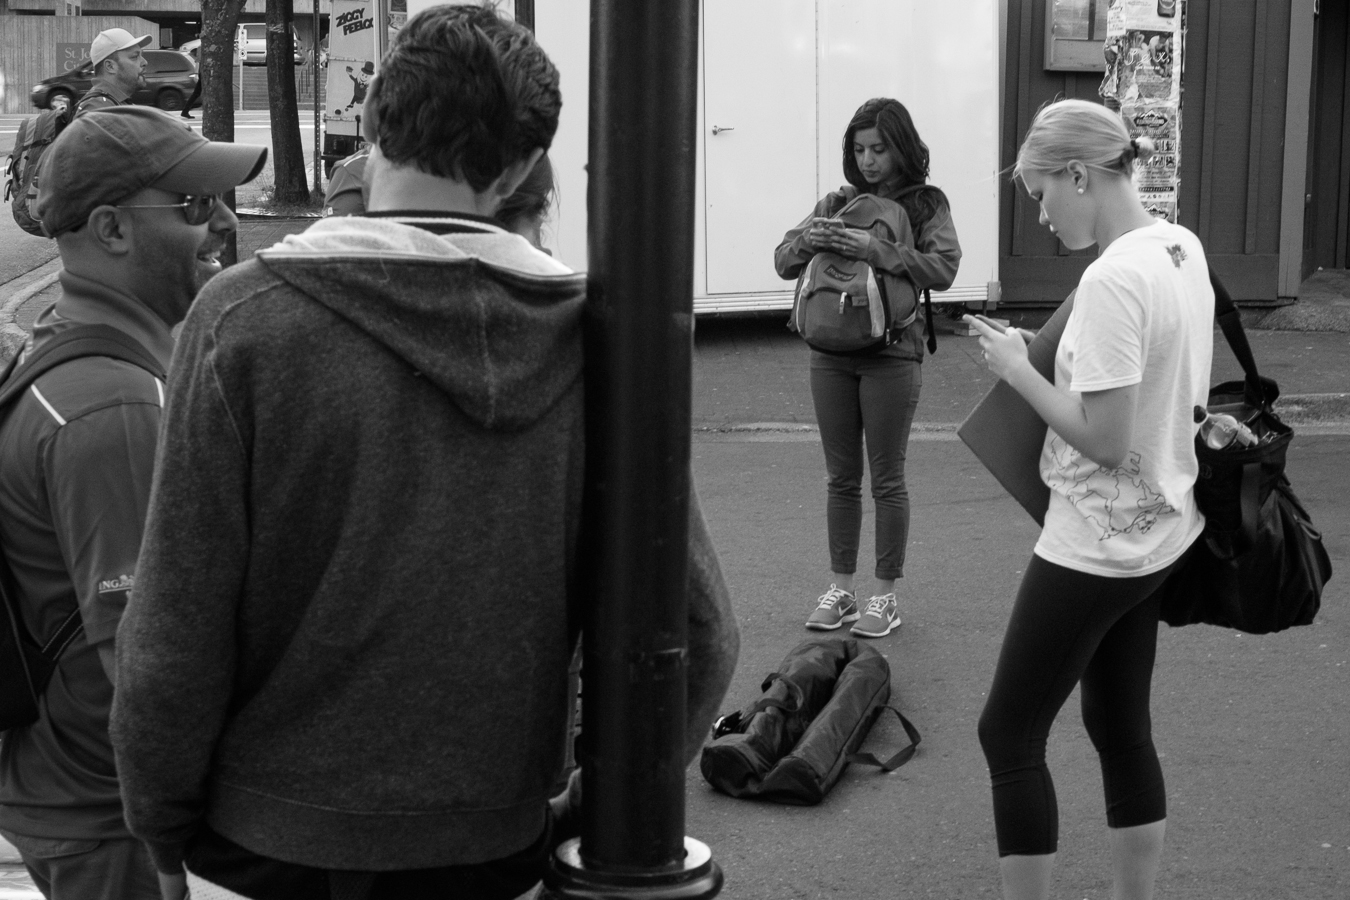 open air texting - George street at Adelaide